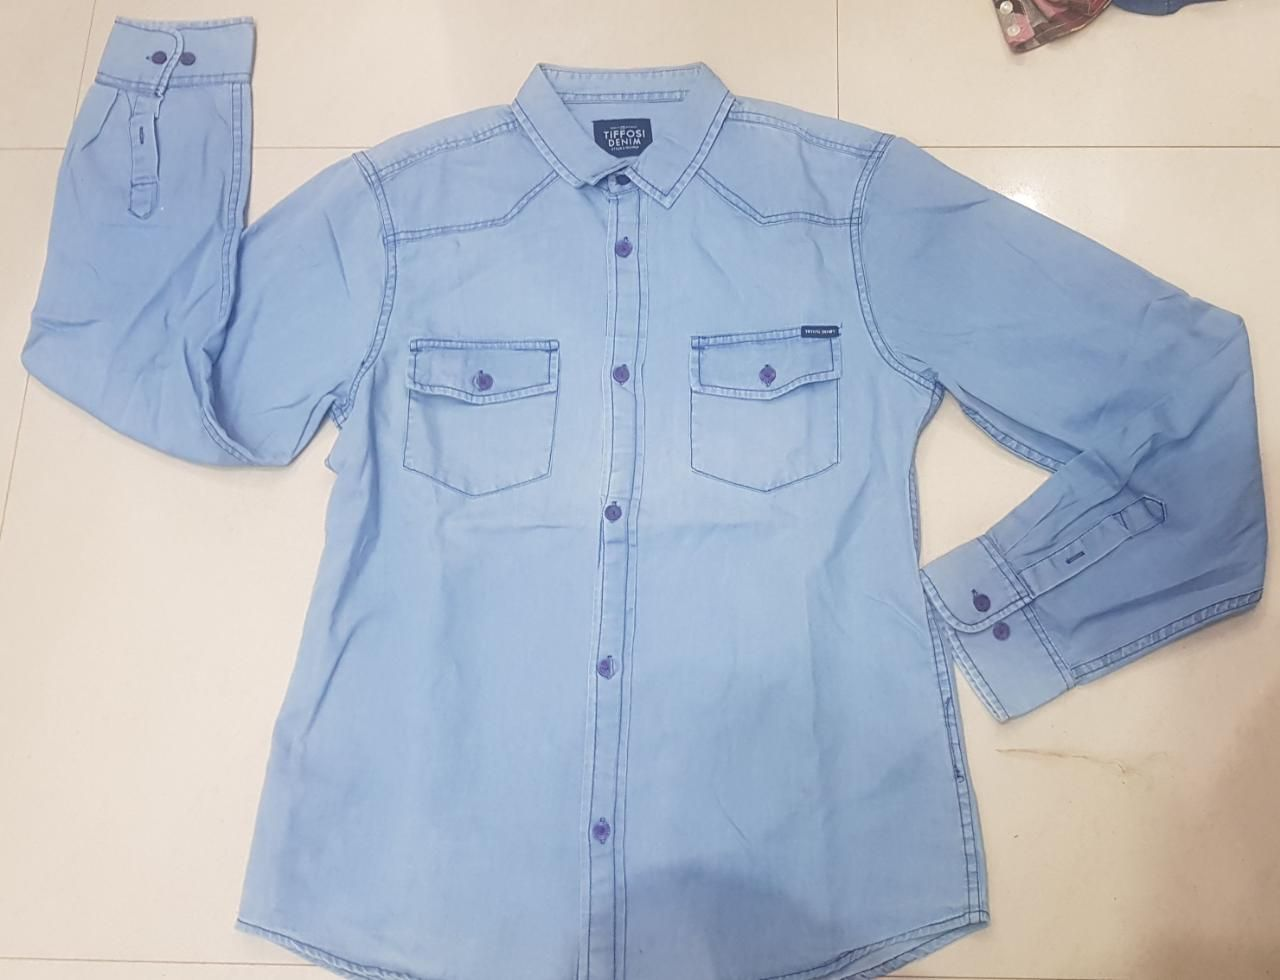 STOCKLOTS AVAILABLE - KIDS DENIM SHIRT  STYLE –  KIDS DENIM SHIRT  FABRIC - 100% COTTON SIZES - 6, 8, 10, 12, 14 COLOR - DENIM BLUE  PACKING - SINGLE PCS IN POLY BAGS QTY - 1000 PCS DELIVERY - READY IN STOCK